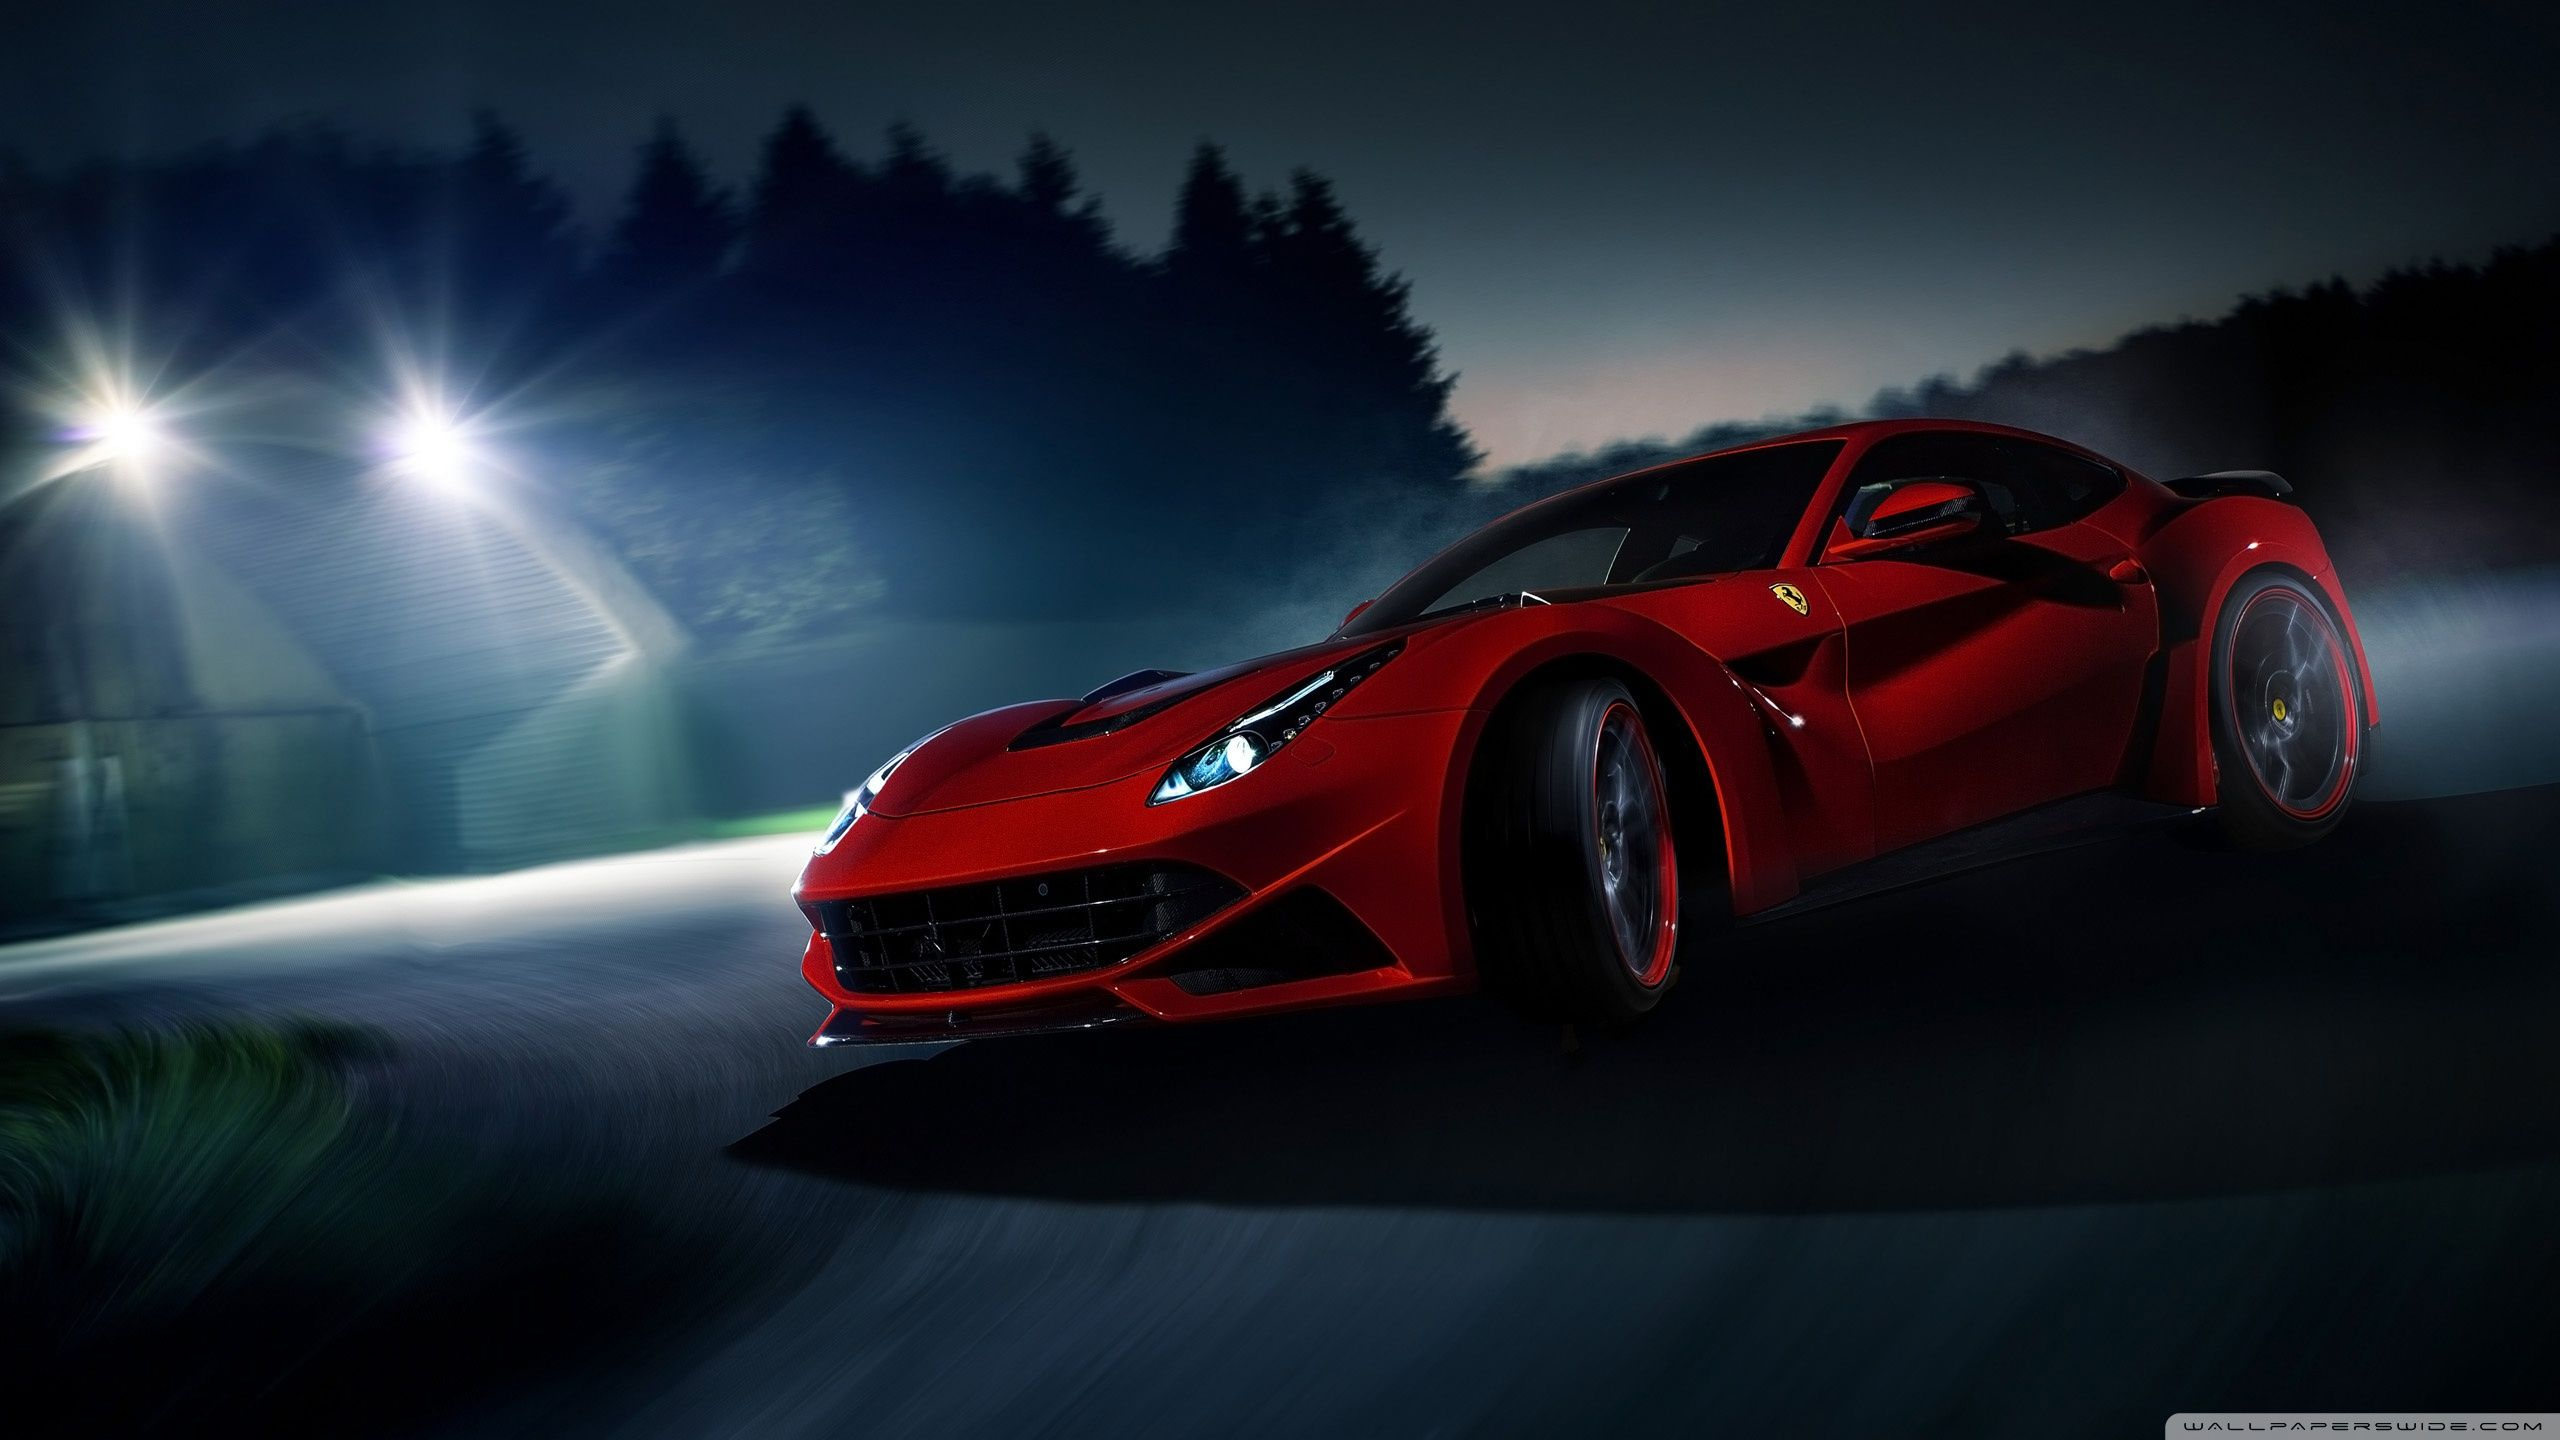 Ferrari Wallpapers , Top Free Ferrari Backgrounds